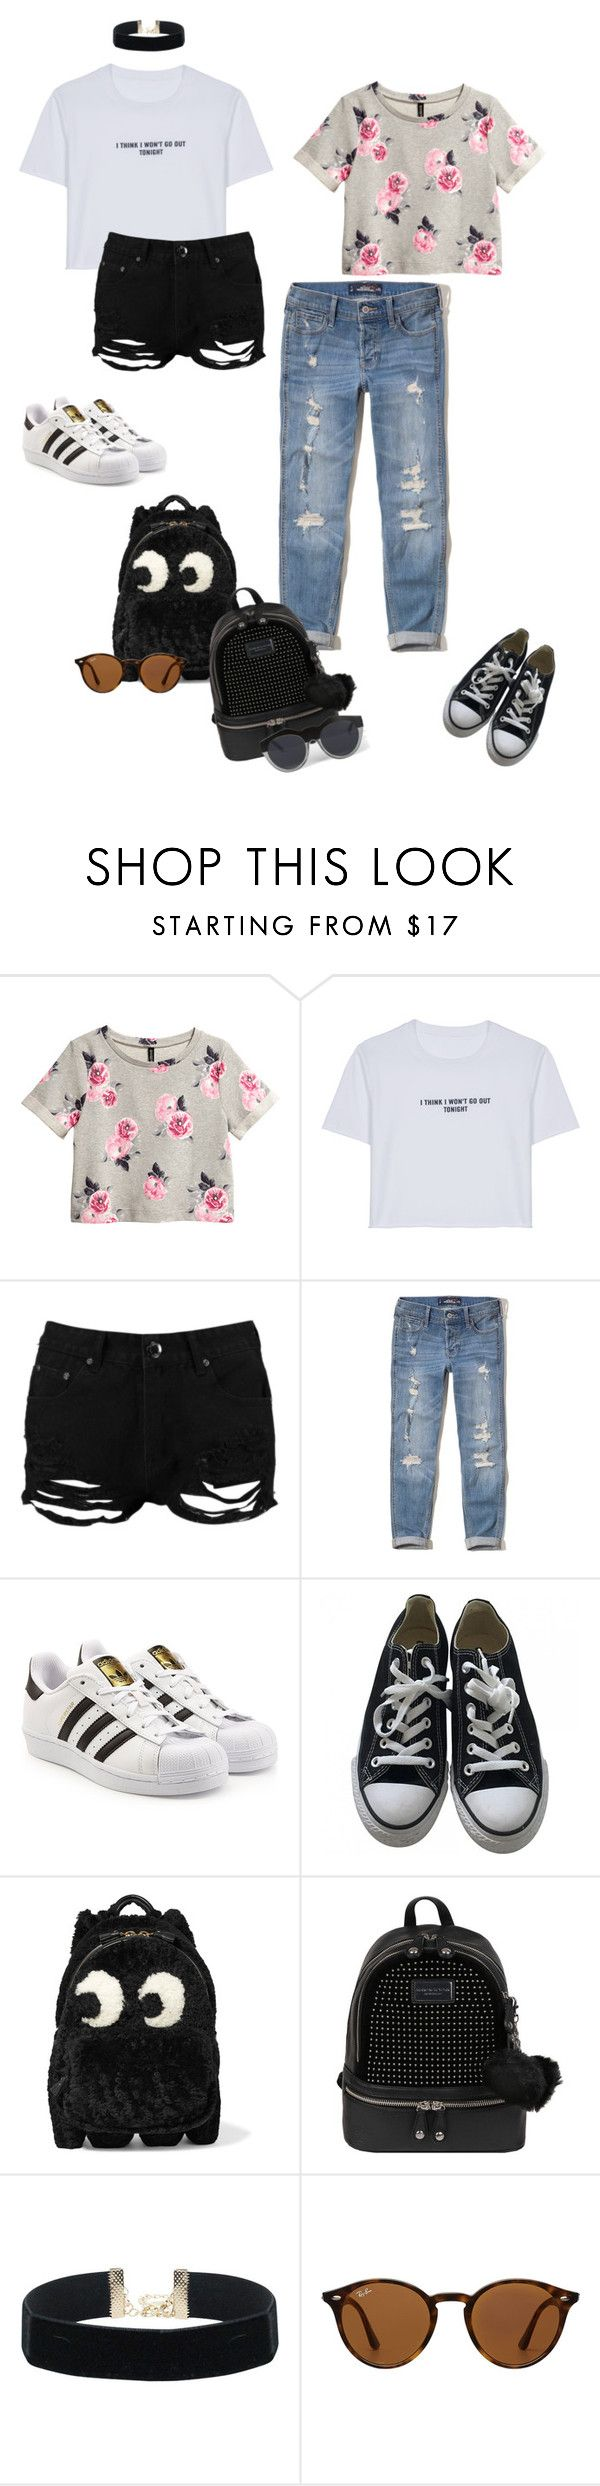 """Look of the day"" by audrey-balt ❤ liked on Polyvore featuring H&M, WithChic, Boohoo, Hollister Co., adidas Originals, Converse, Anya Hindmarch, Andrew Marc, Ray-Ban and Le Specs"